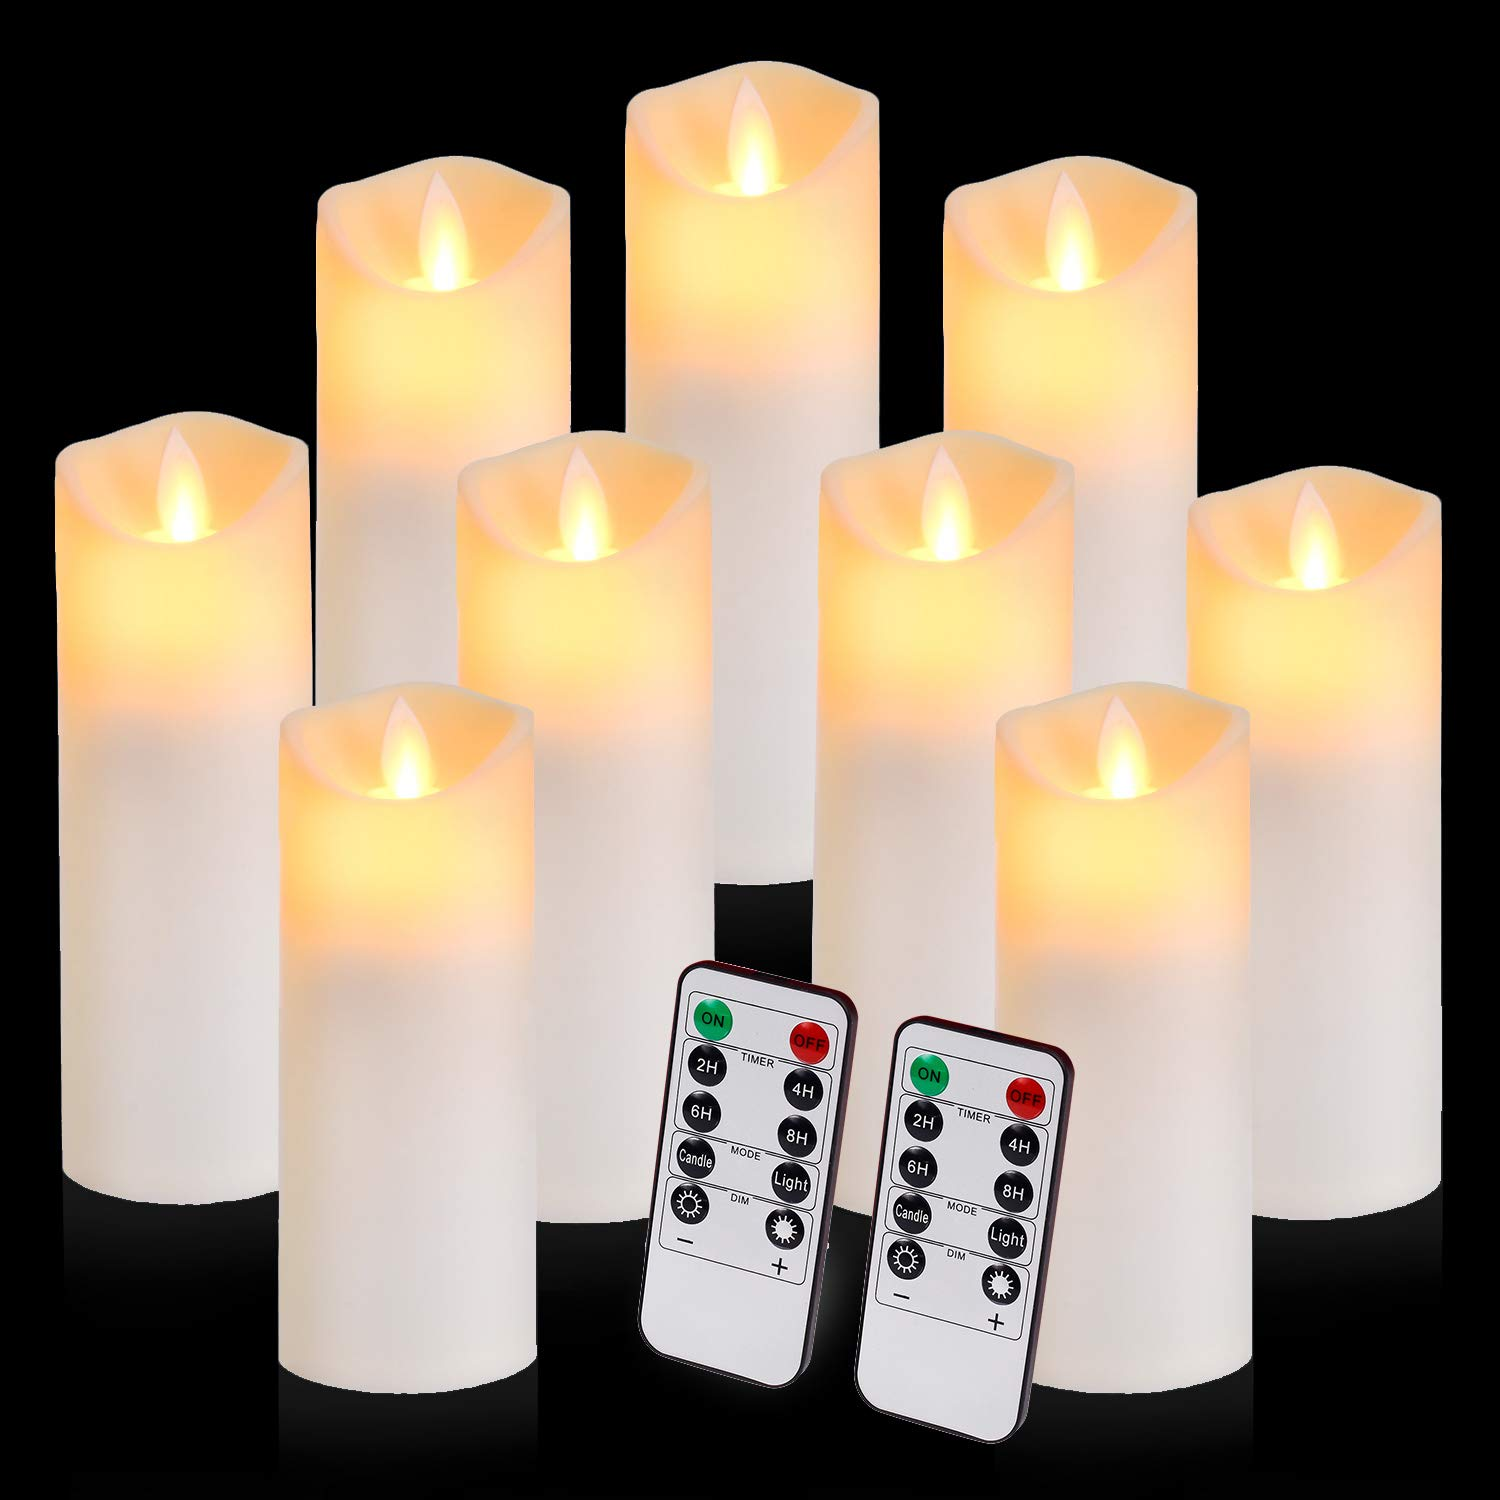 Flickering Flameless Candles Remote Control for tea night